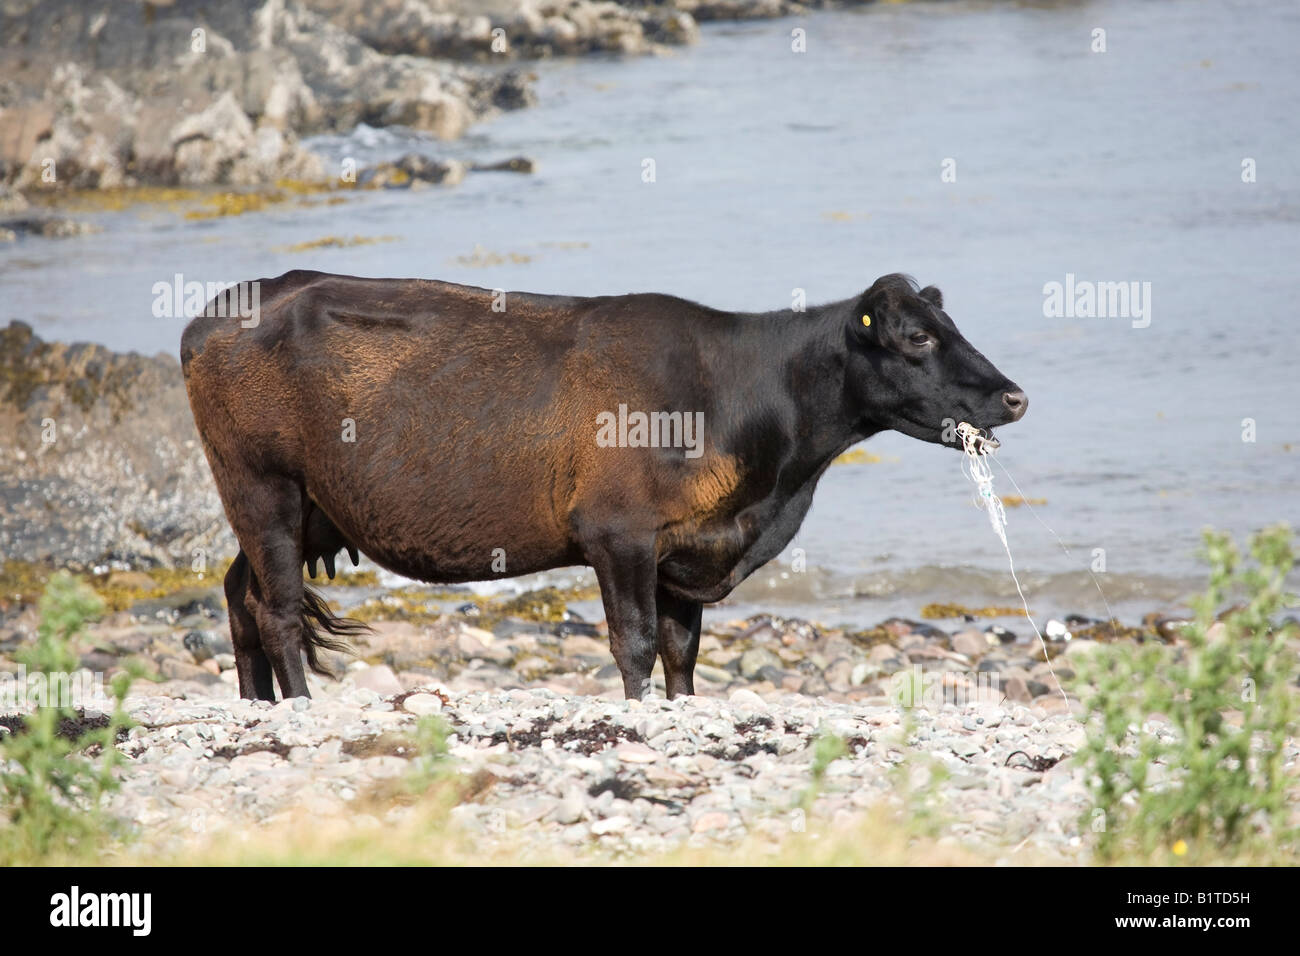 Plastic tide, Coastal beach pollution at Ord, Isle of Sky, Loch Eishort. Cows, farm animals eating marine litter, - Stock Image